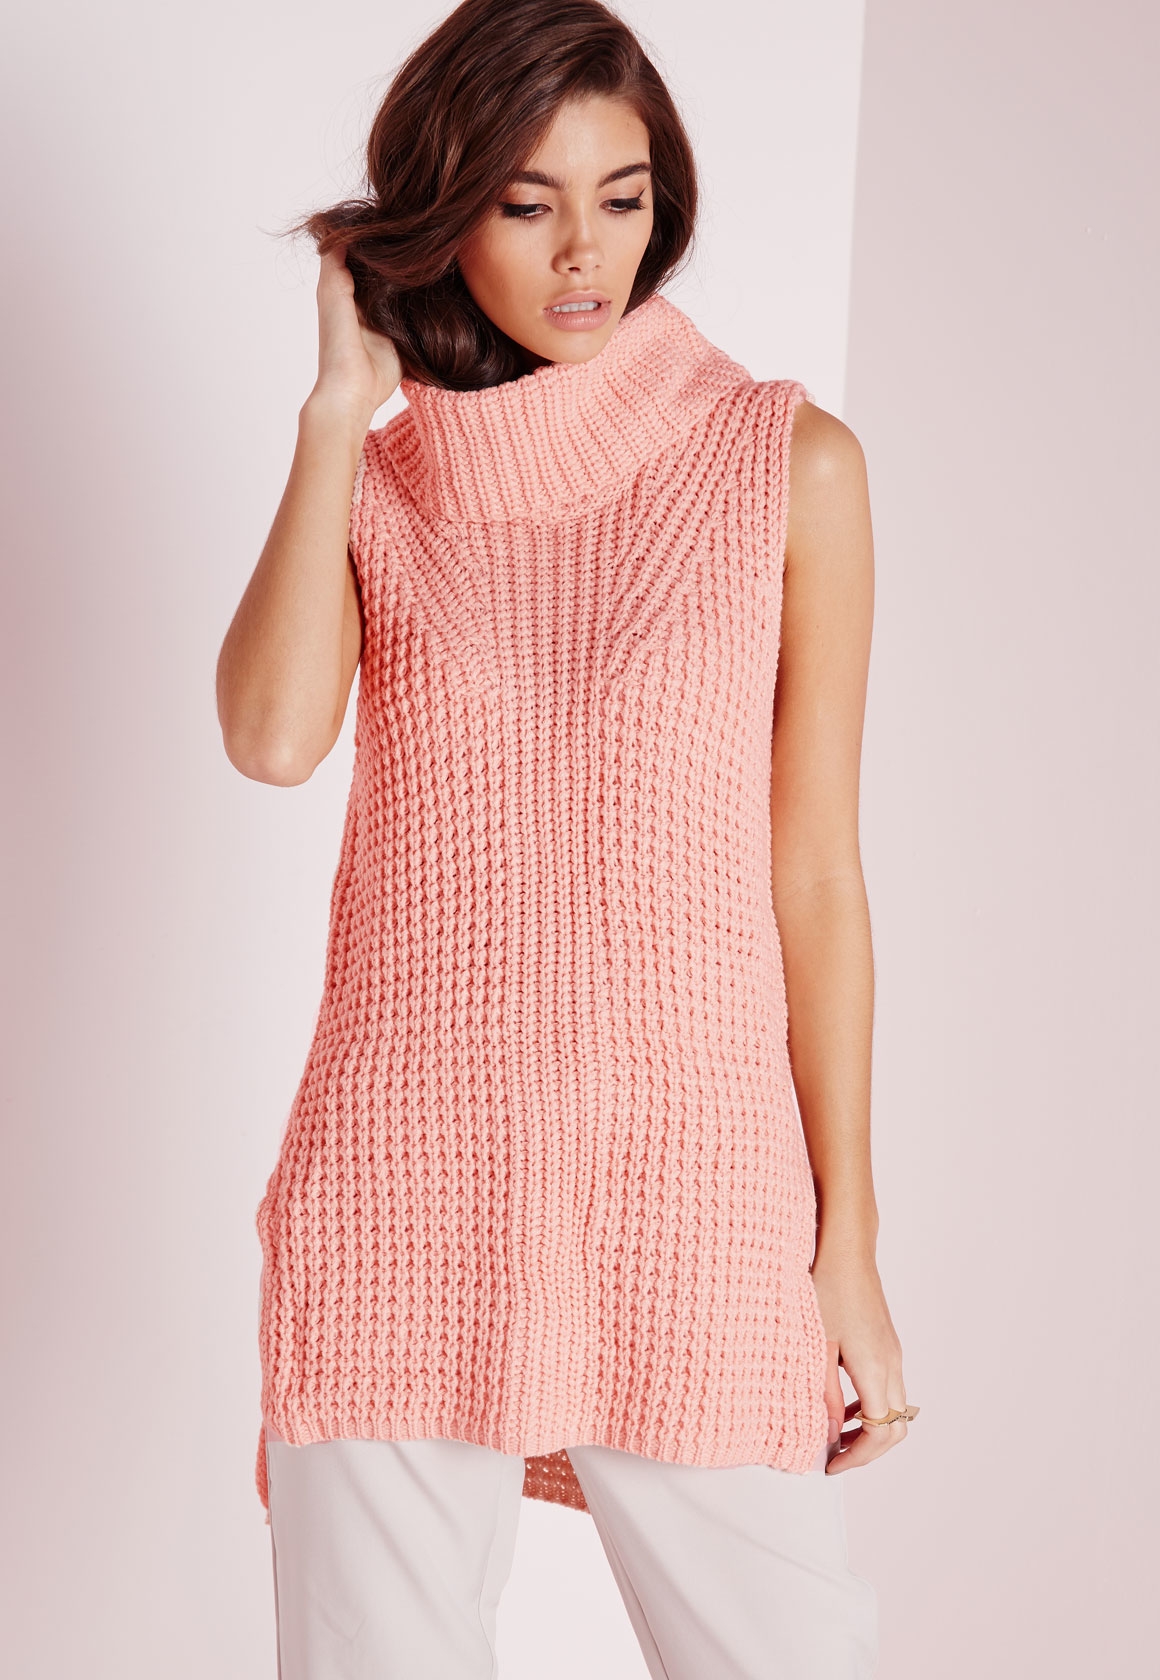 Lyst - Missguided Sleeveless Chunky Roll Neck Jumper Pink in Pink b6021ee30